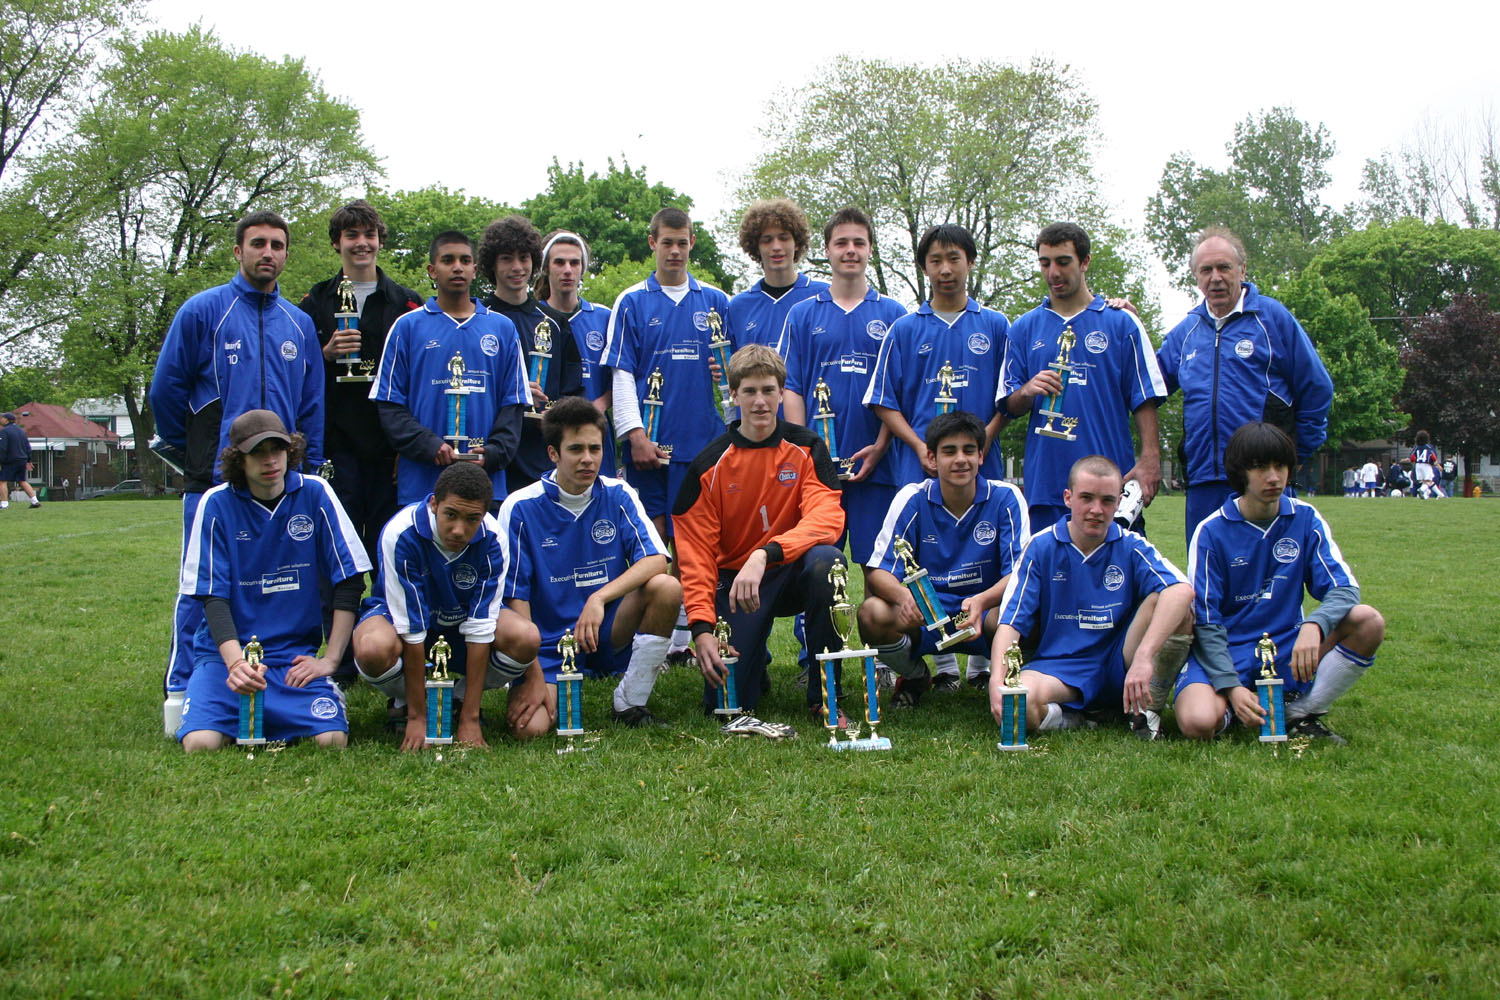 NORTH YORK COSMOS (1987) BOYS TEAM